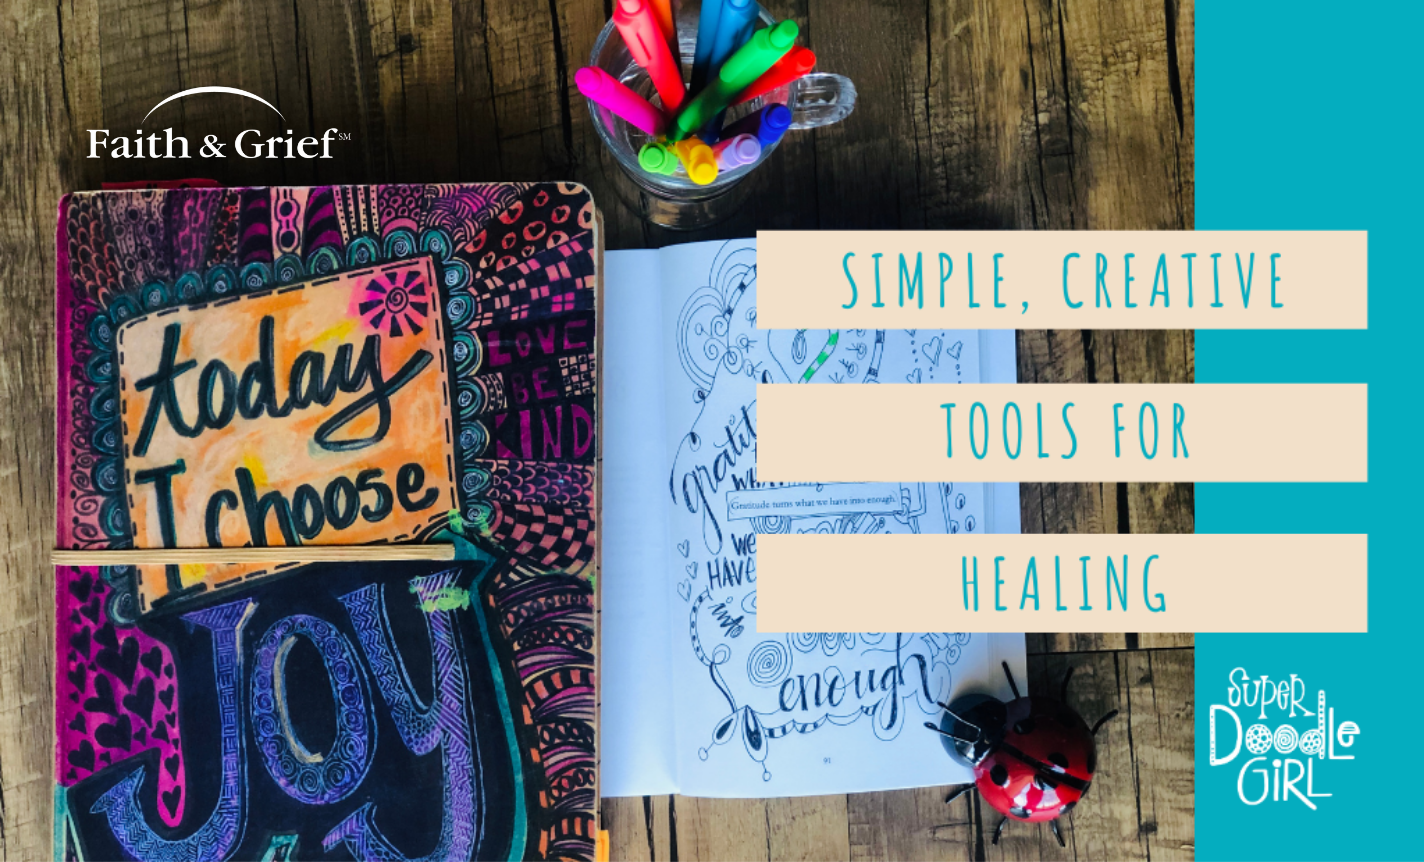 Spiritual Practices for Grief - Creative Tools for Healing